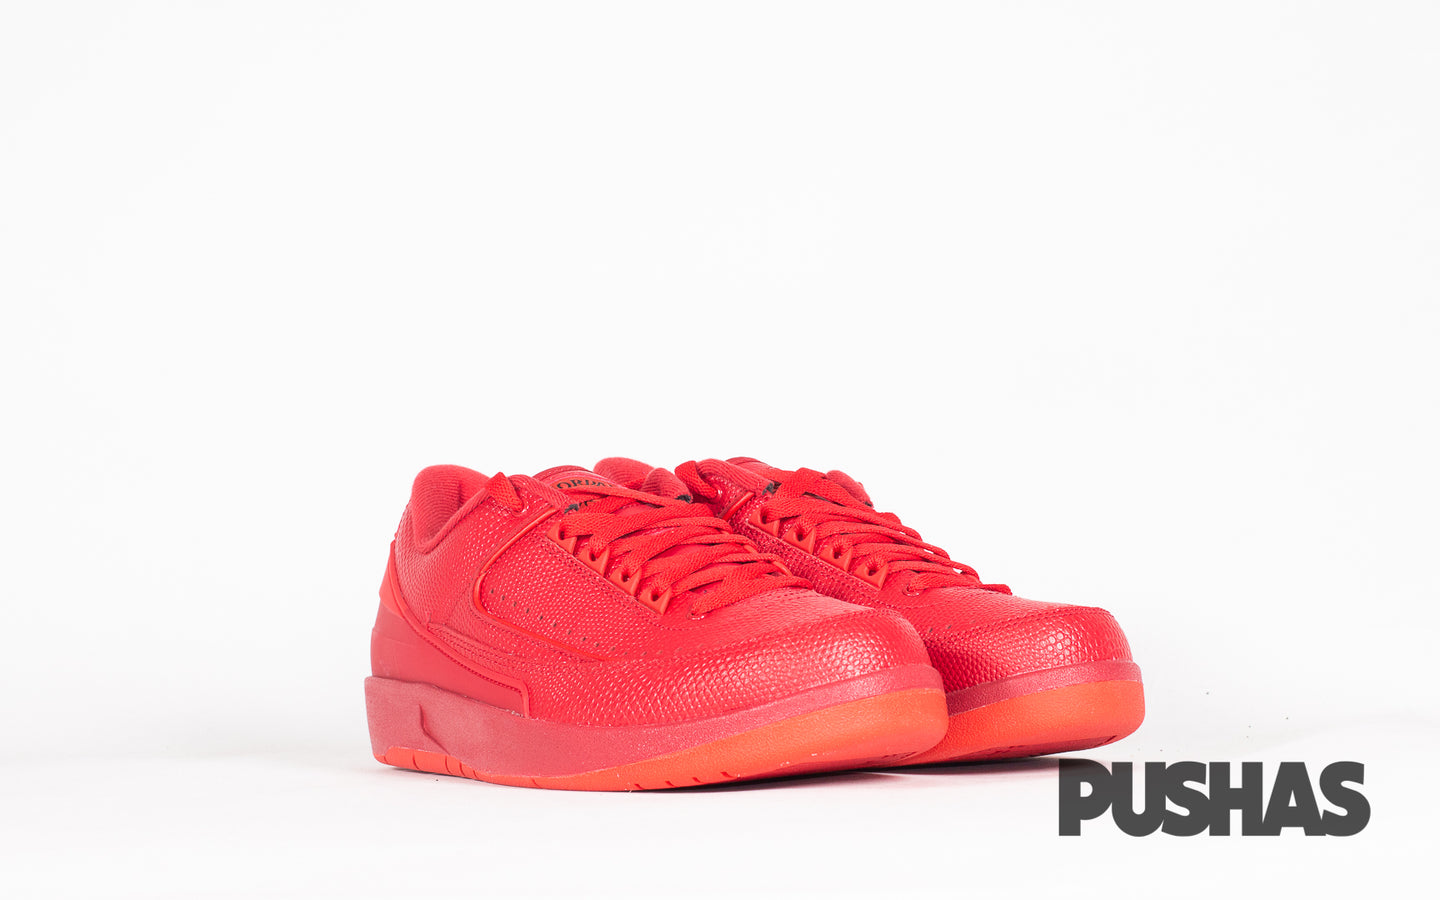 pushas-nike-Air-Jordan-2-Low-Gym-Red